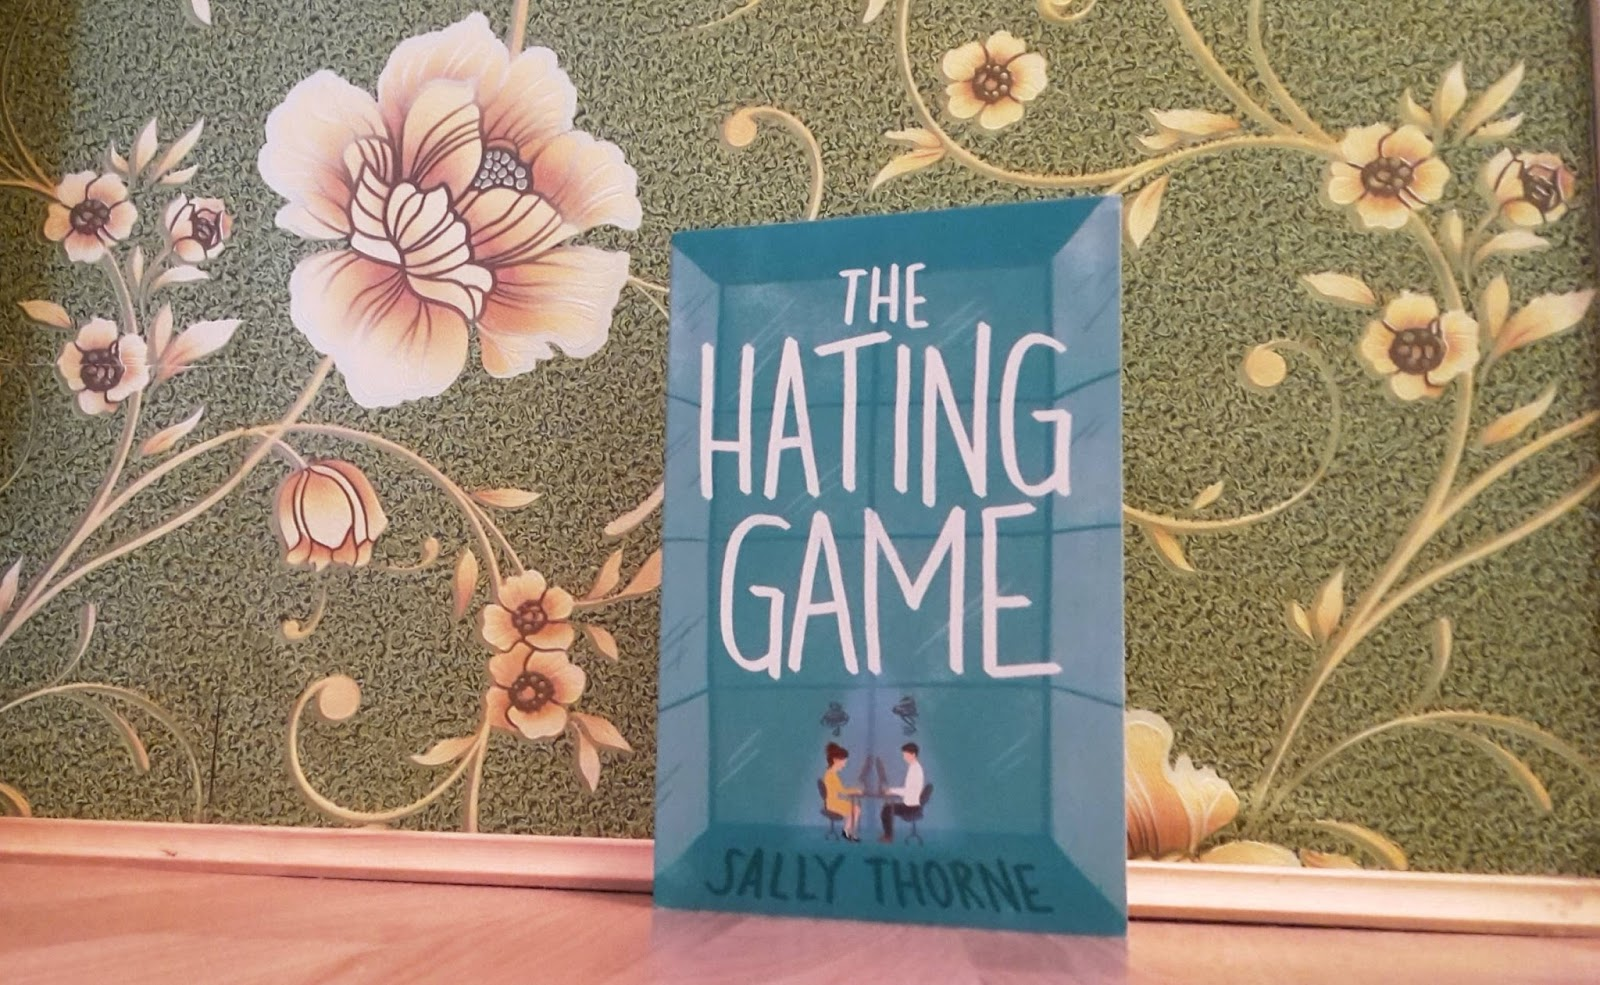 Sally thorne the hating game the book challengers but really the ebook price is ridiculously high so there was no way that i got myself that instead i got to wait for weeks for my paperback to arrive all fandeluxe Images